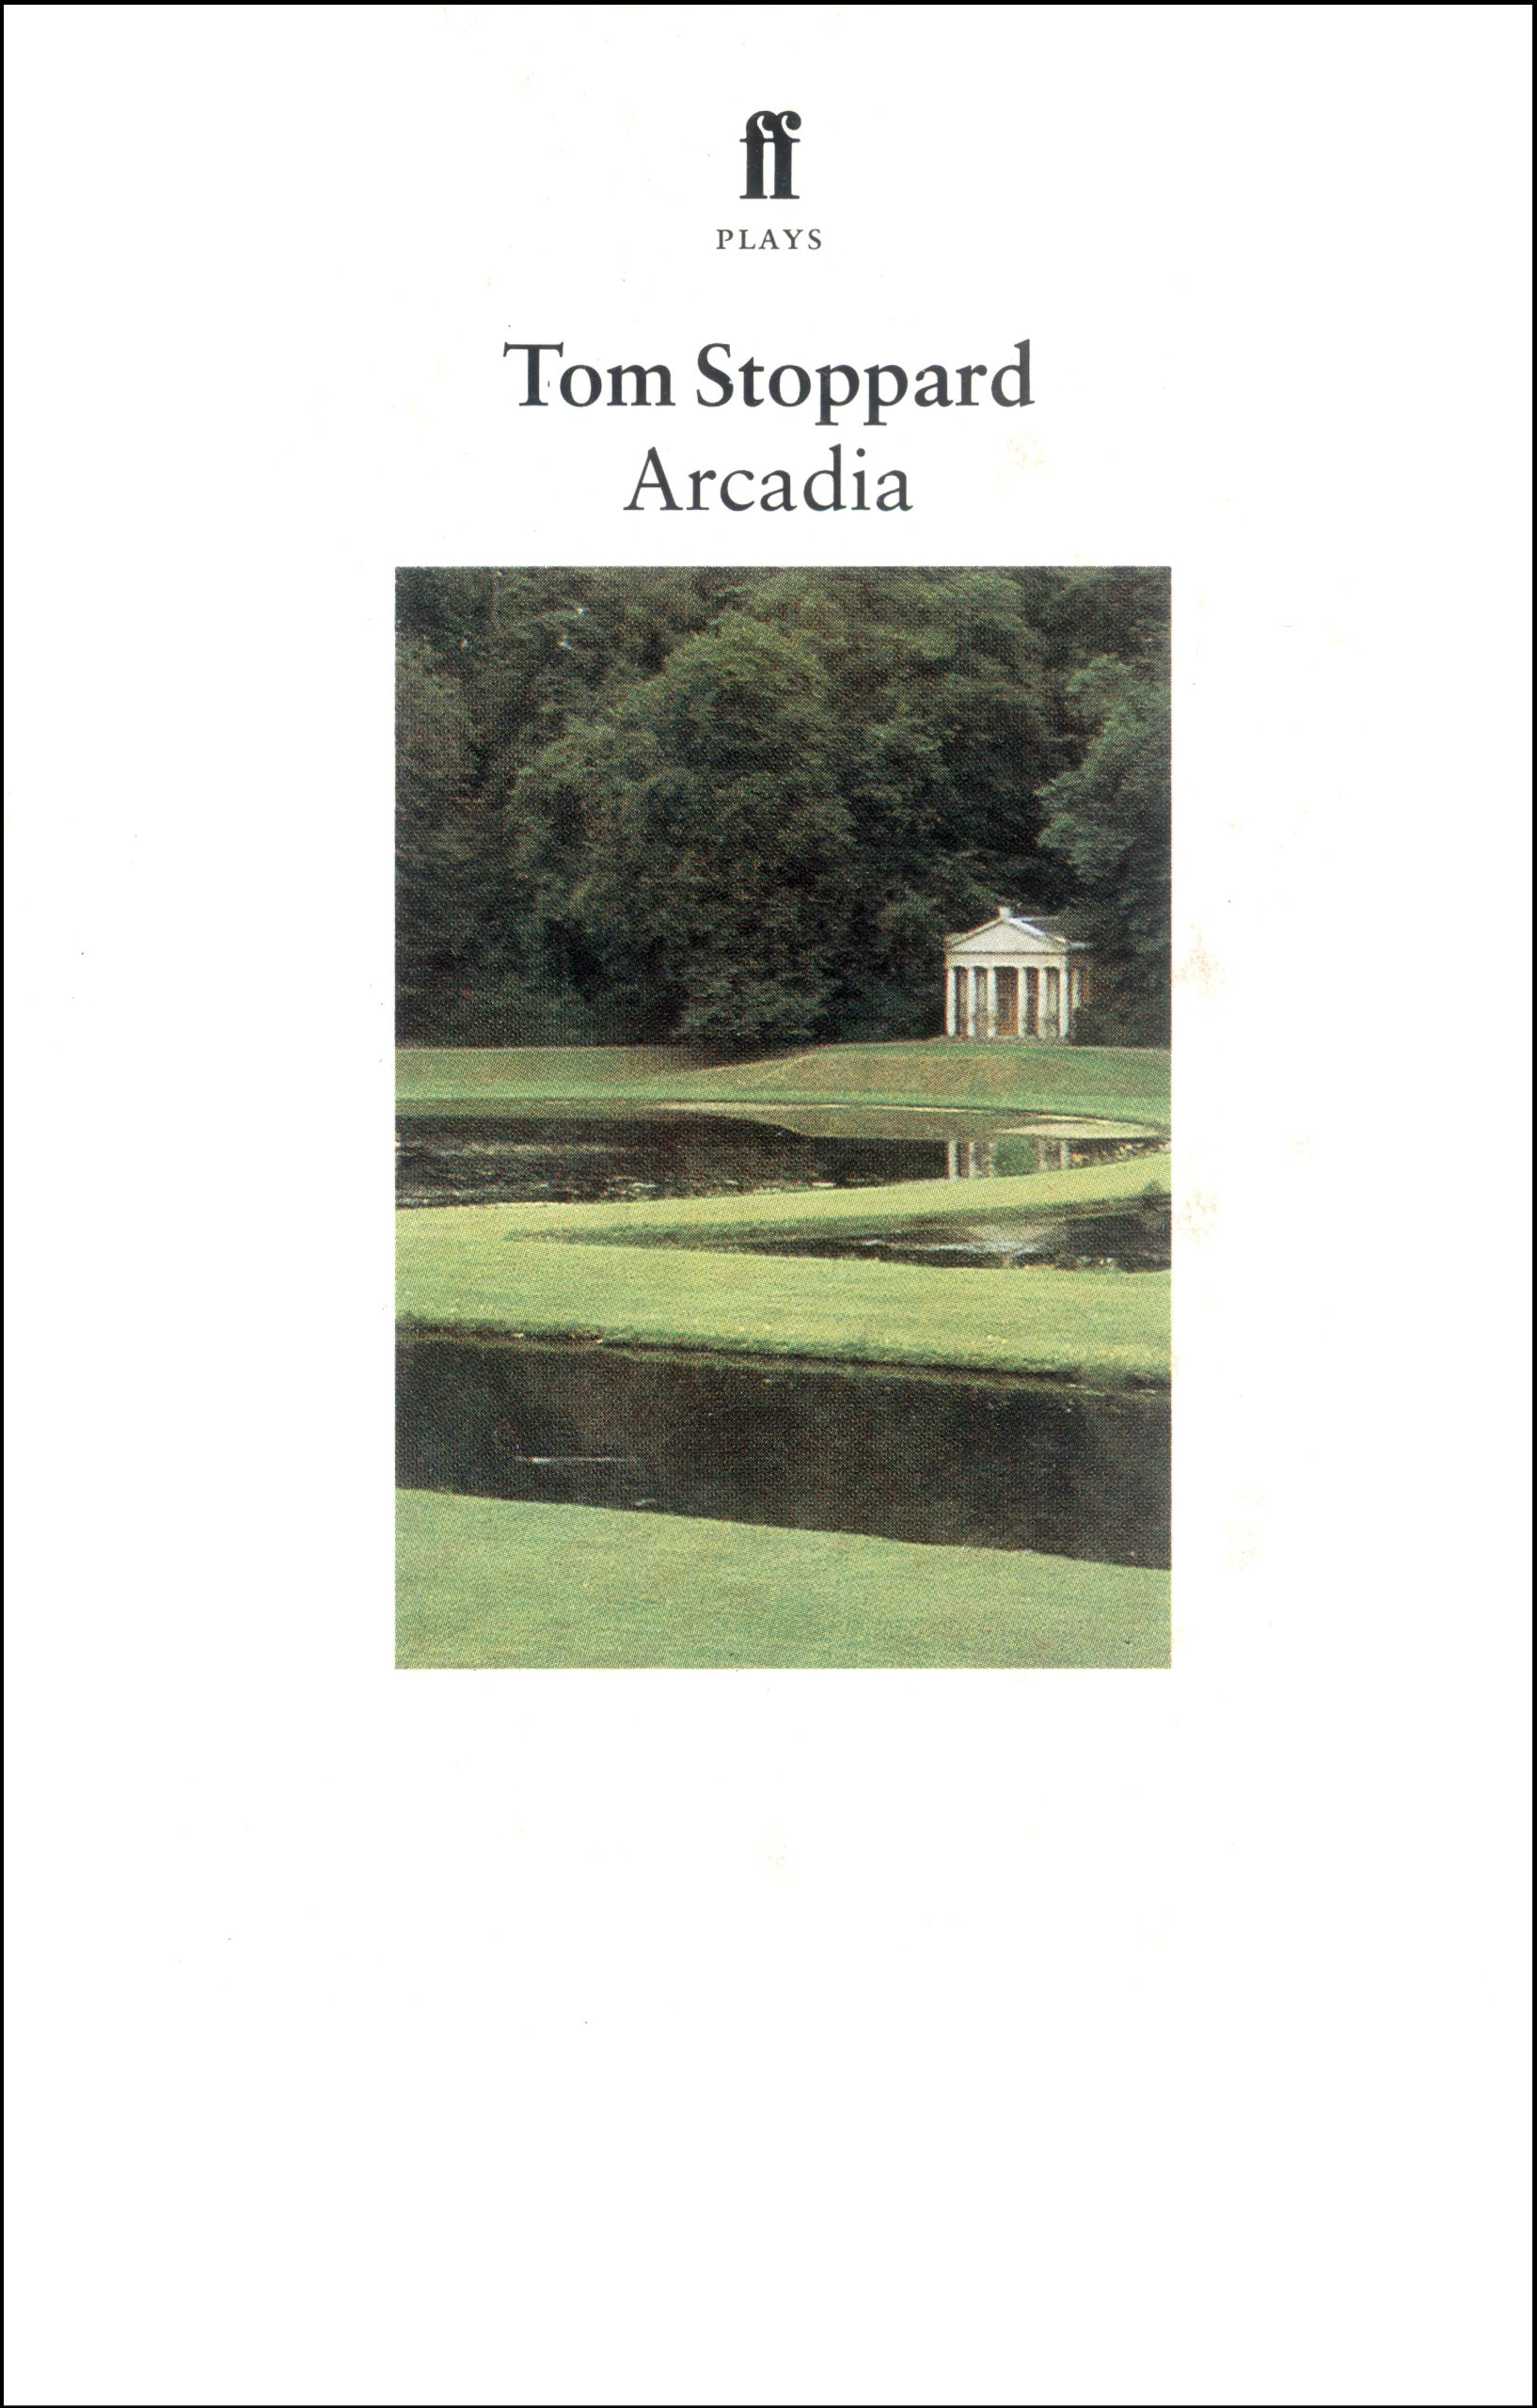 determinism in the play arcadia by tom stoppard A short summary of tom stoppard's arcadia the play shifts back to the early the problem with determinism is likely hidden in the author's observations.